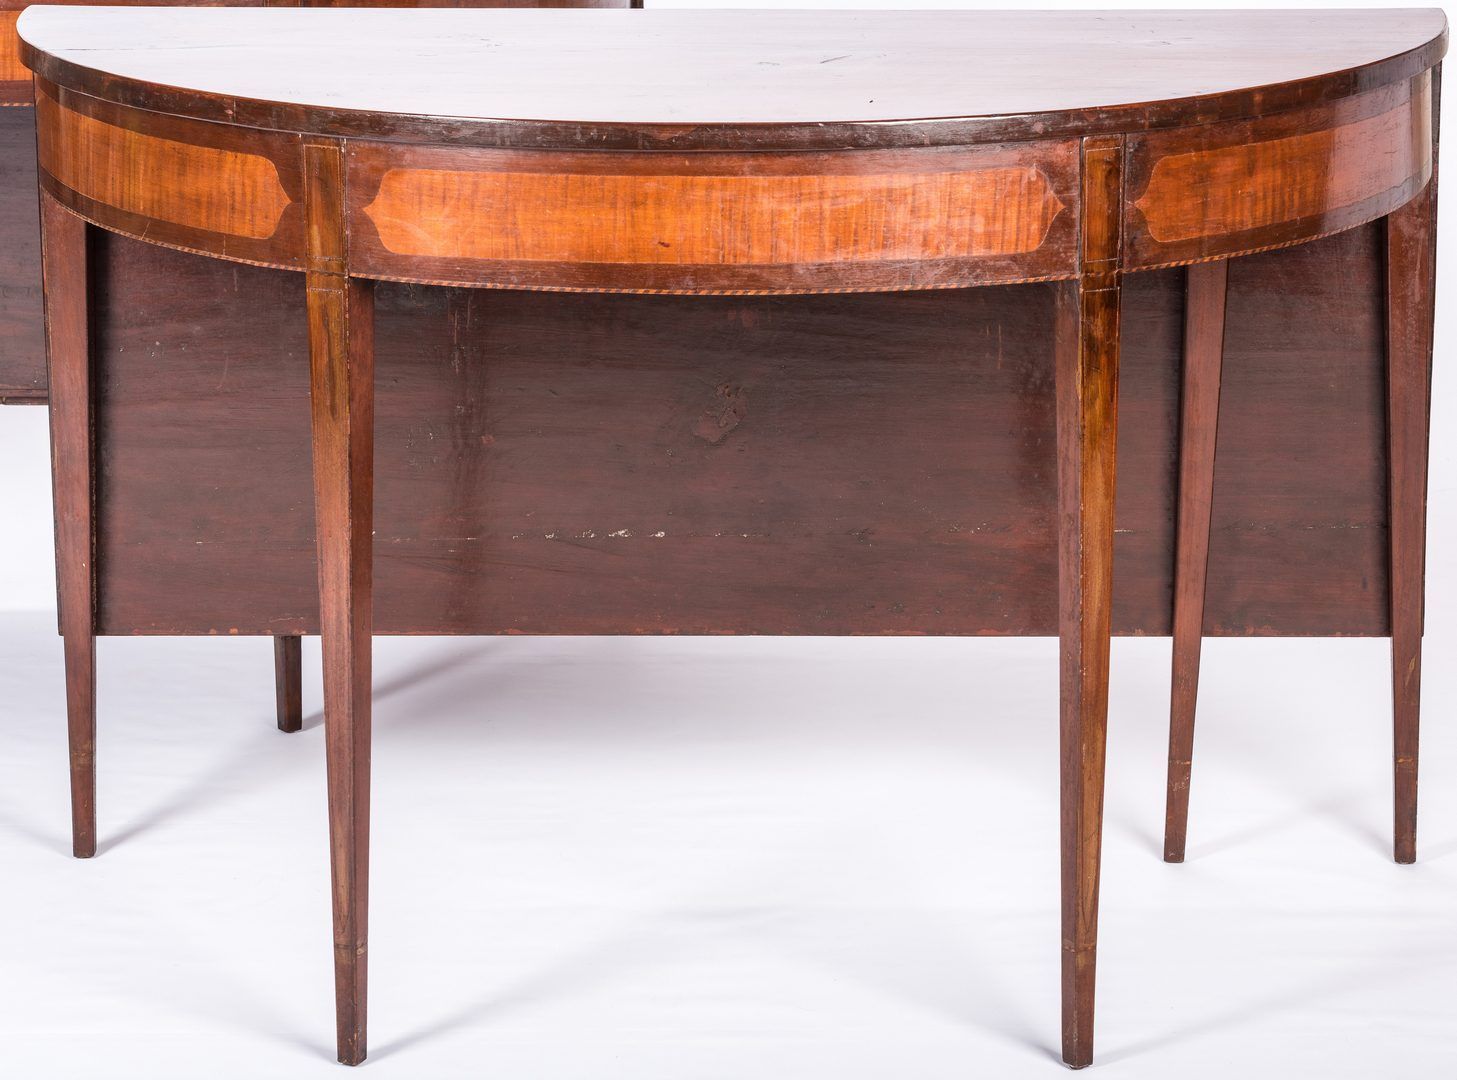 Lot 171: Southern Hepplewhite Inlaid Dining Table, attrib. KY